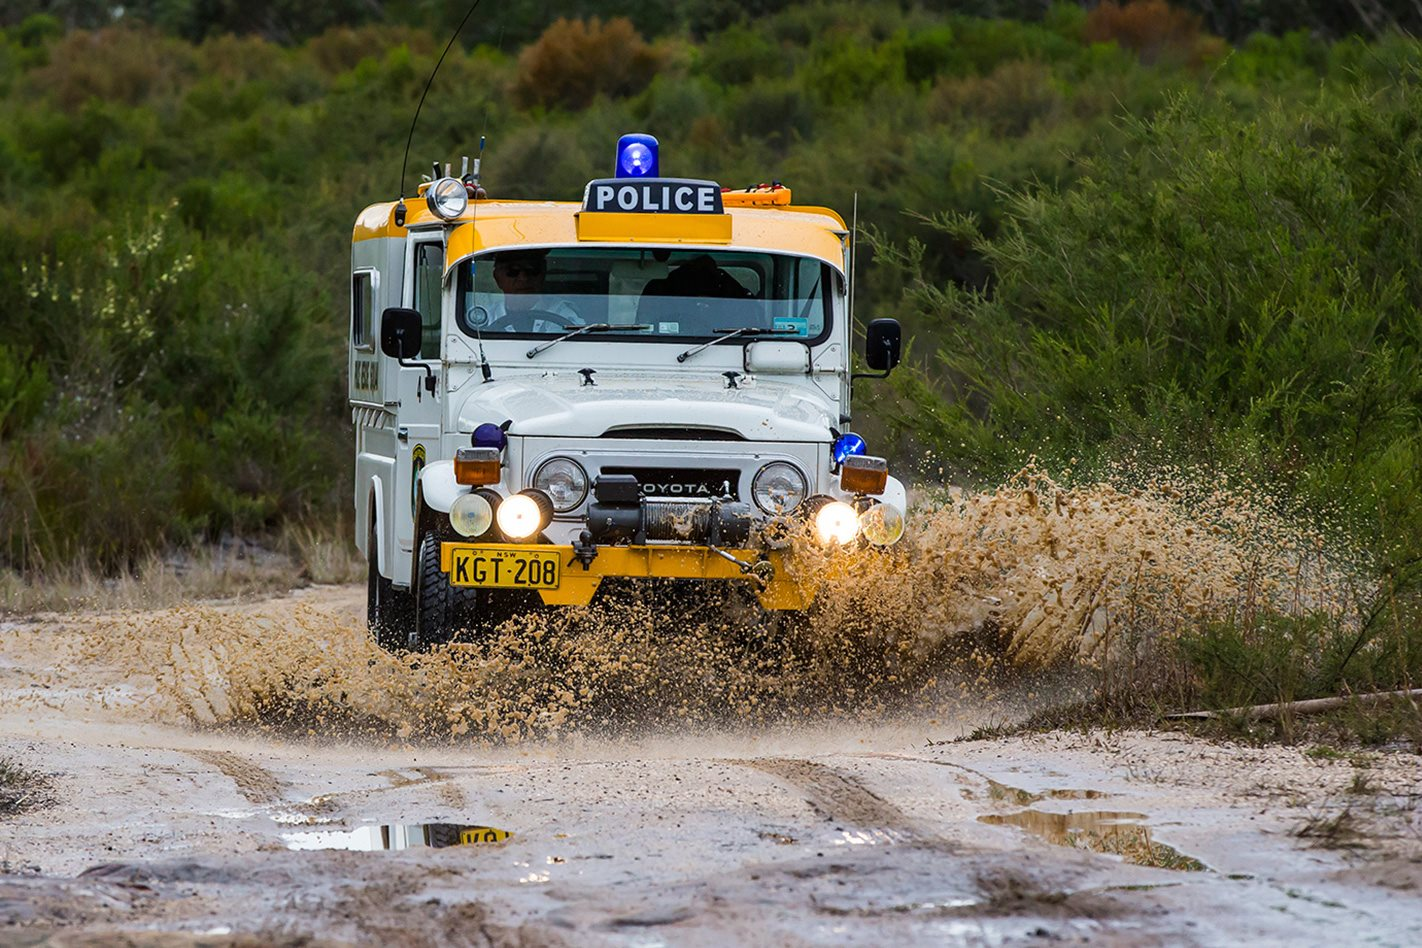 NSW-Police-Rescue-Restored-HJ47-Cruiser-offroad.jpg